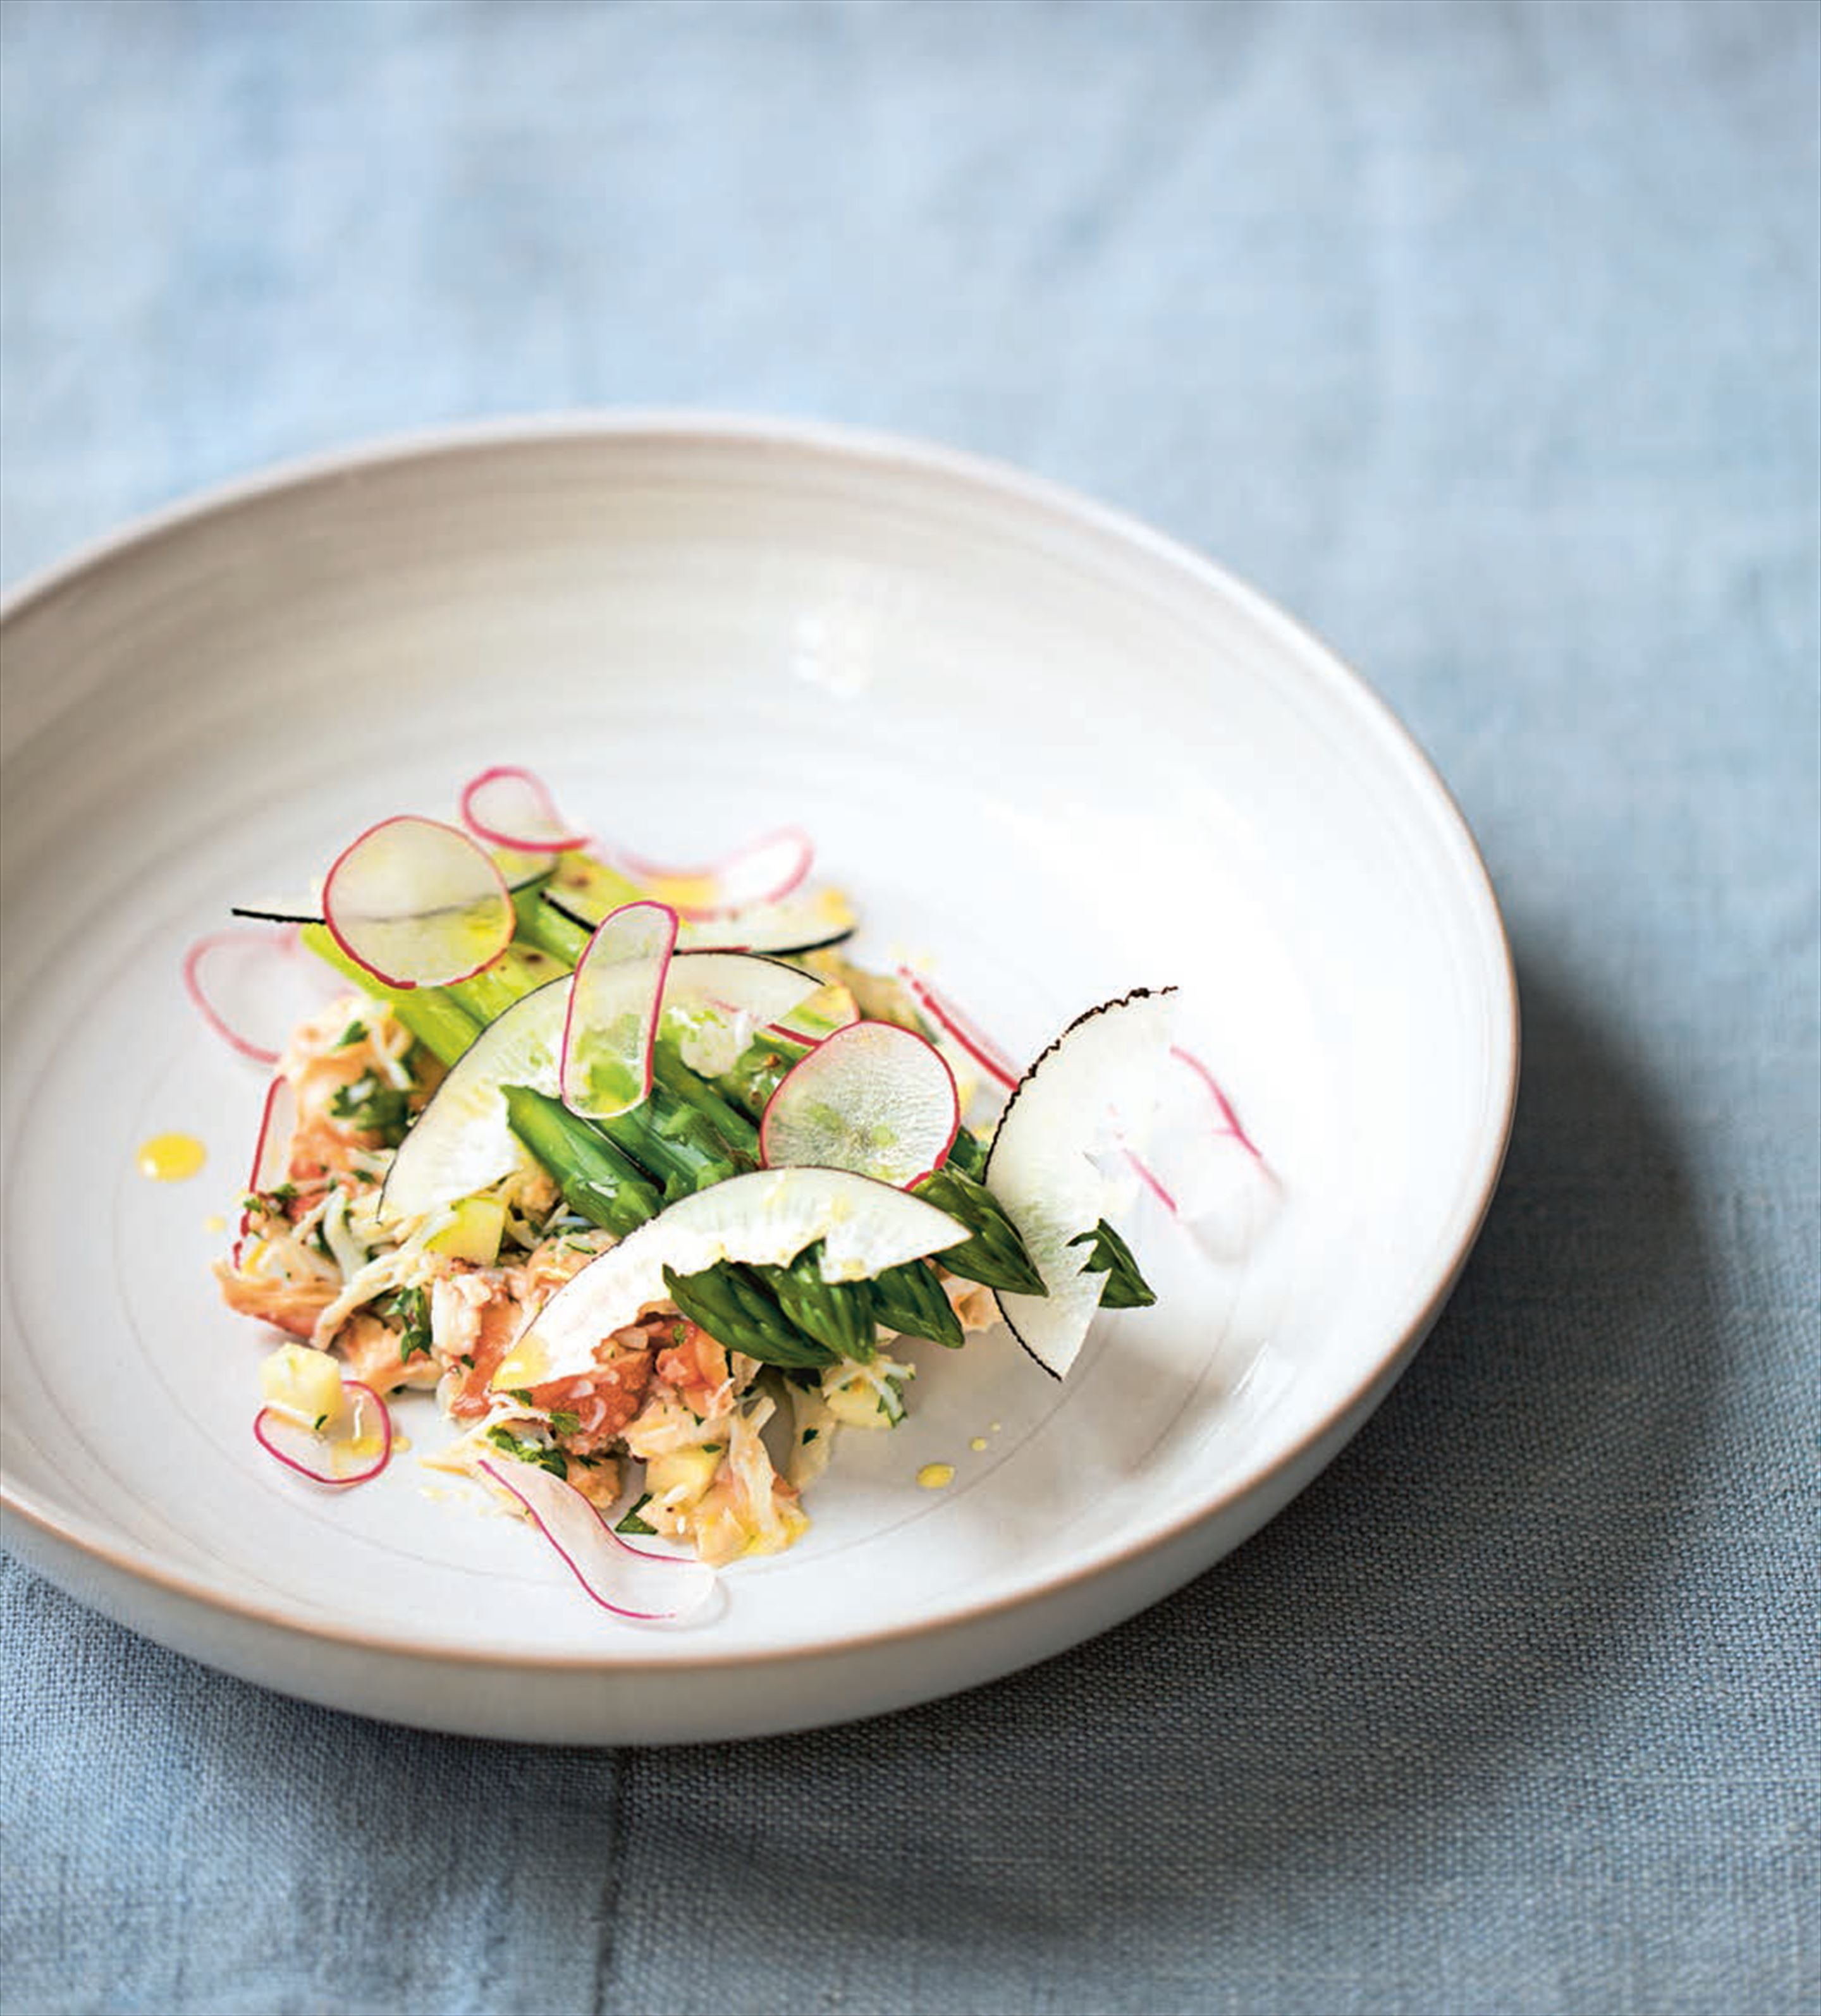 Crab and asparagus salad with radishes